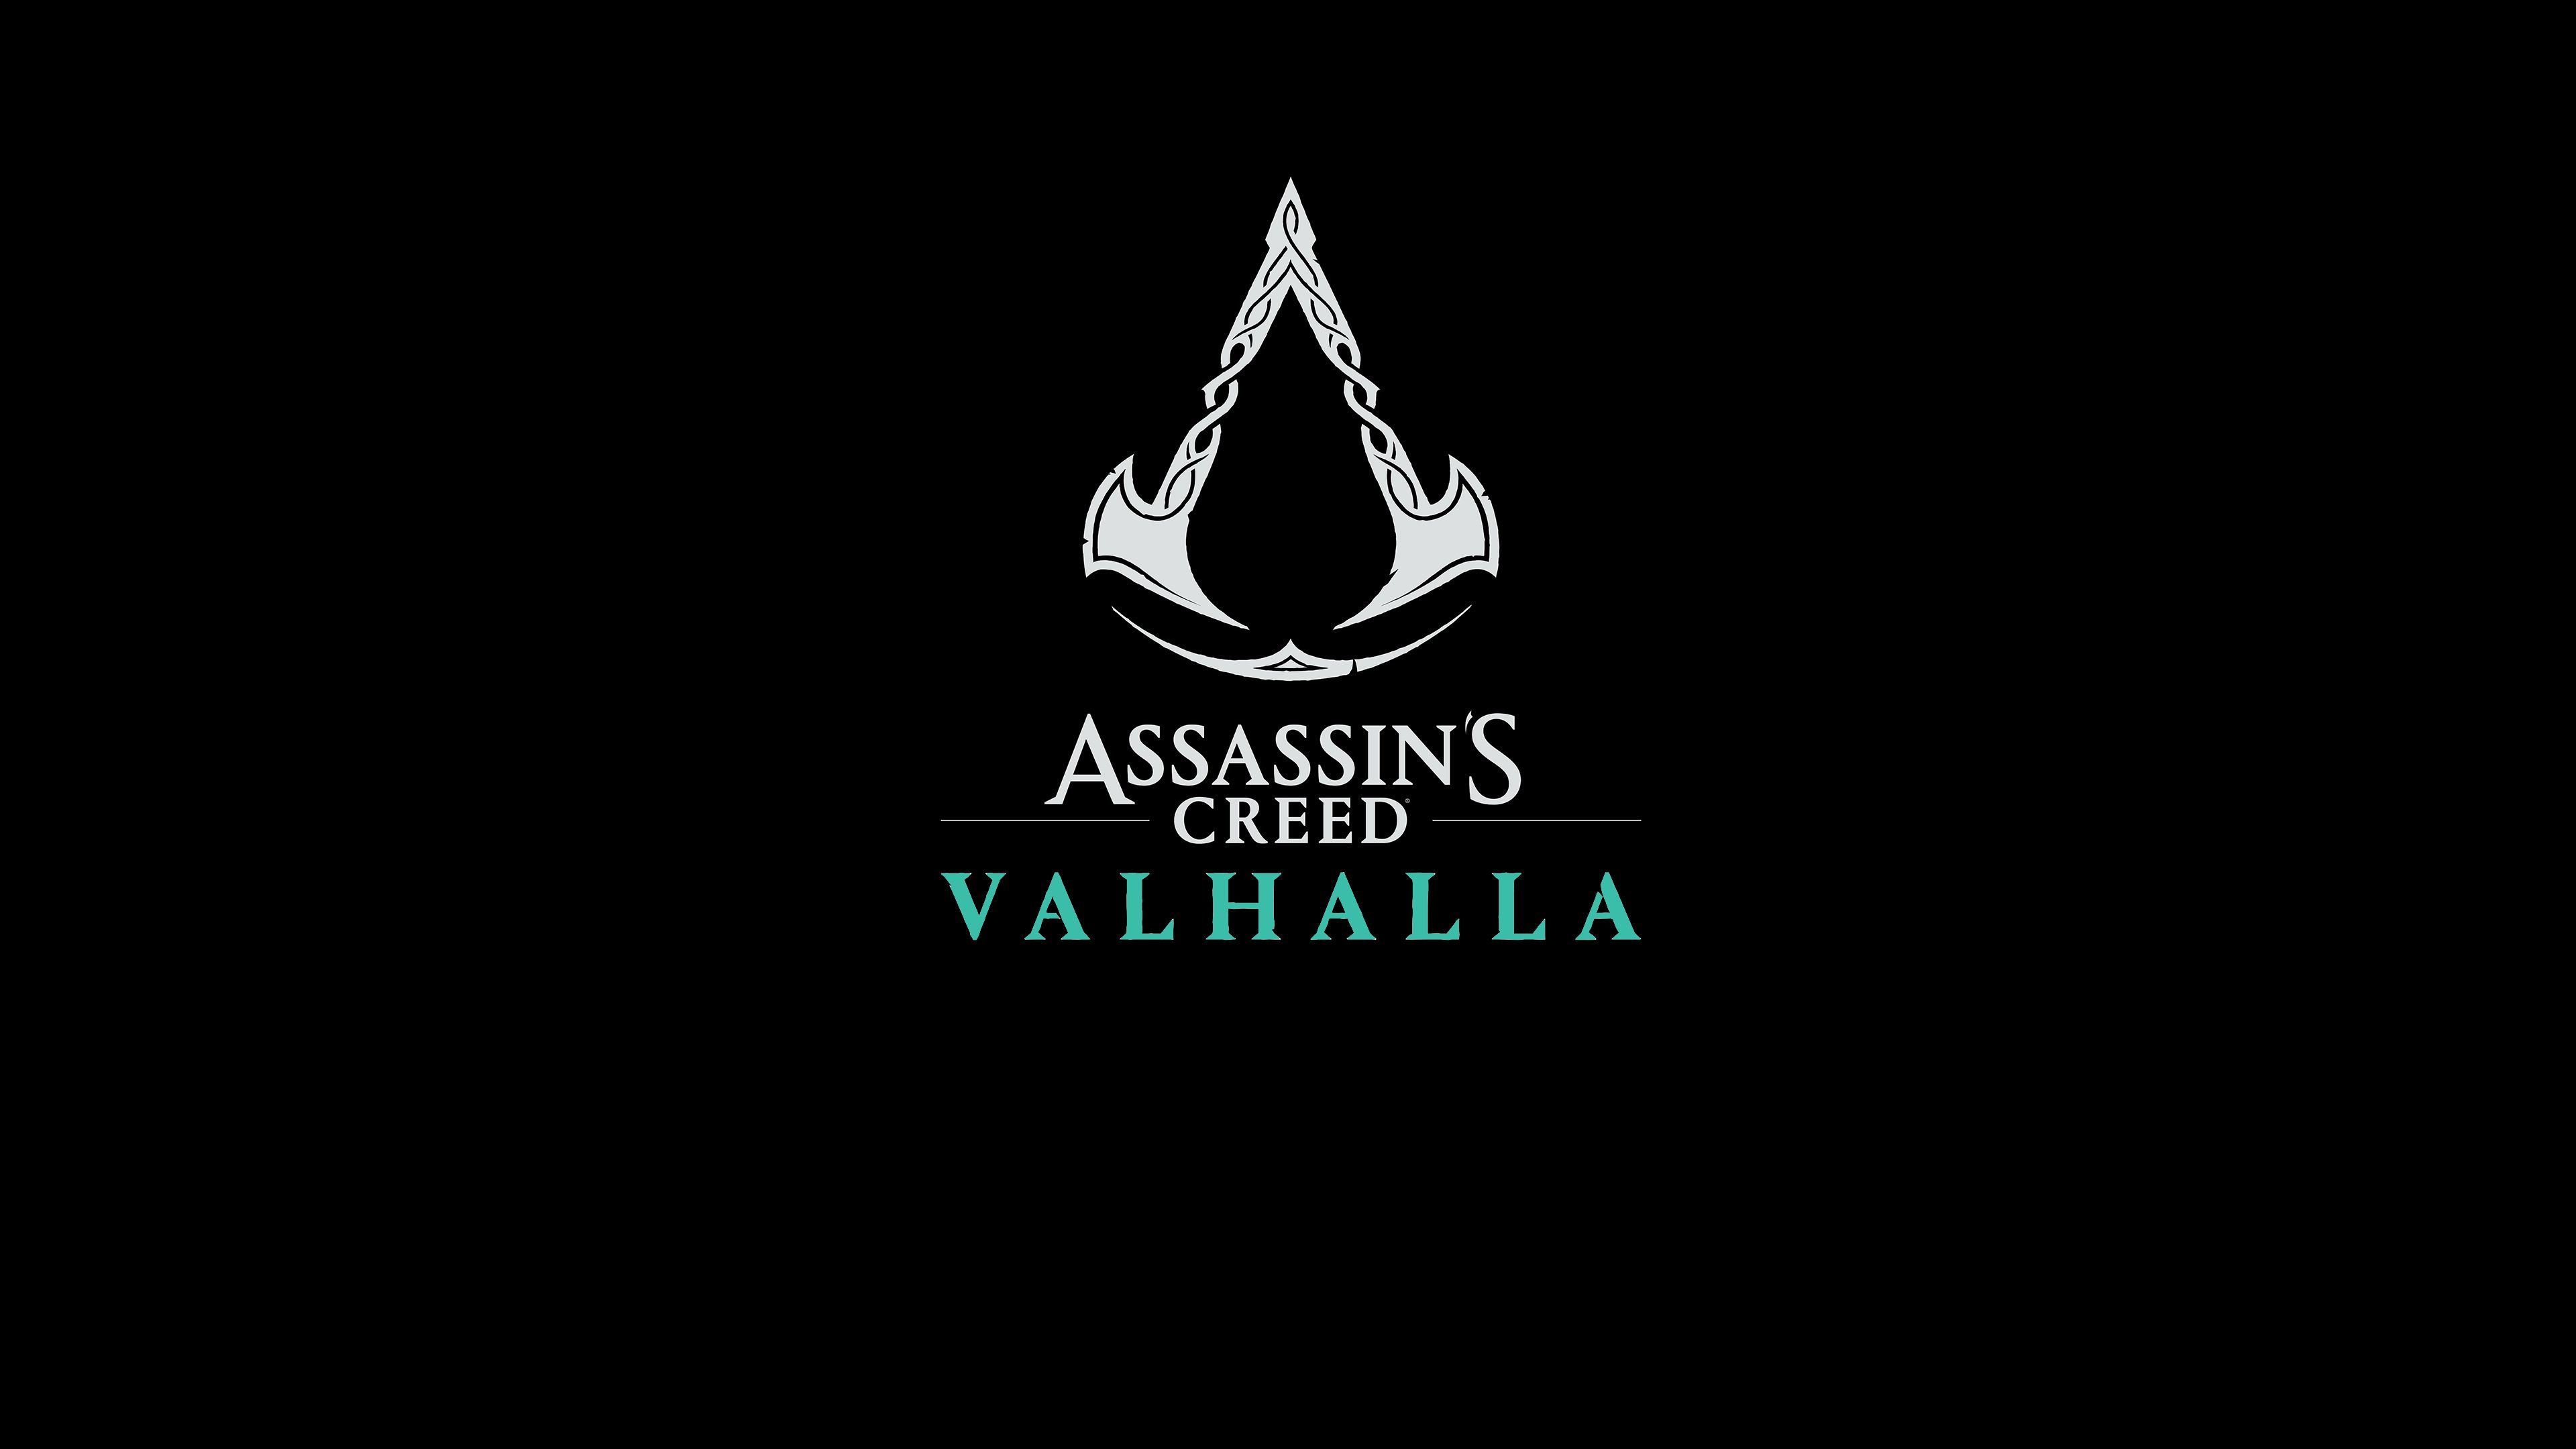 Assassin S Creed Valhalla Wallpapers Wallpaper Cave